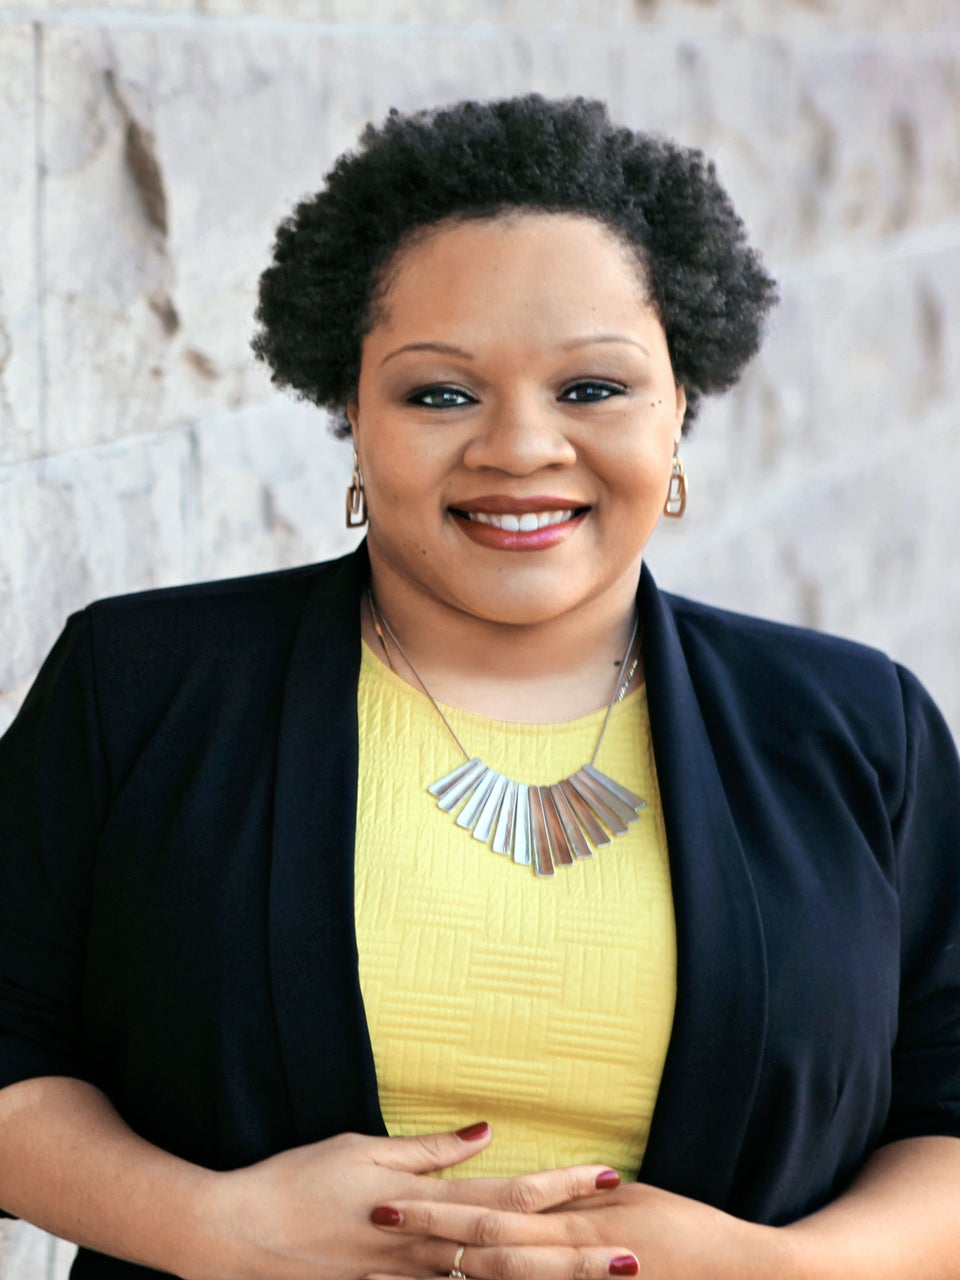 Journalist Yamiche Alcindor Is Giving A Voice To The Voiceless